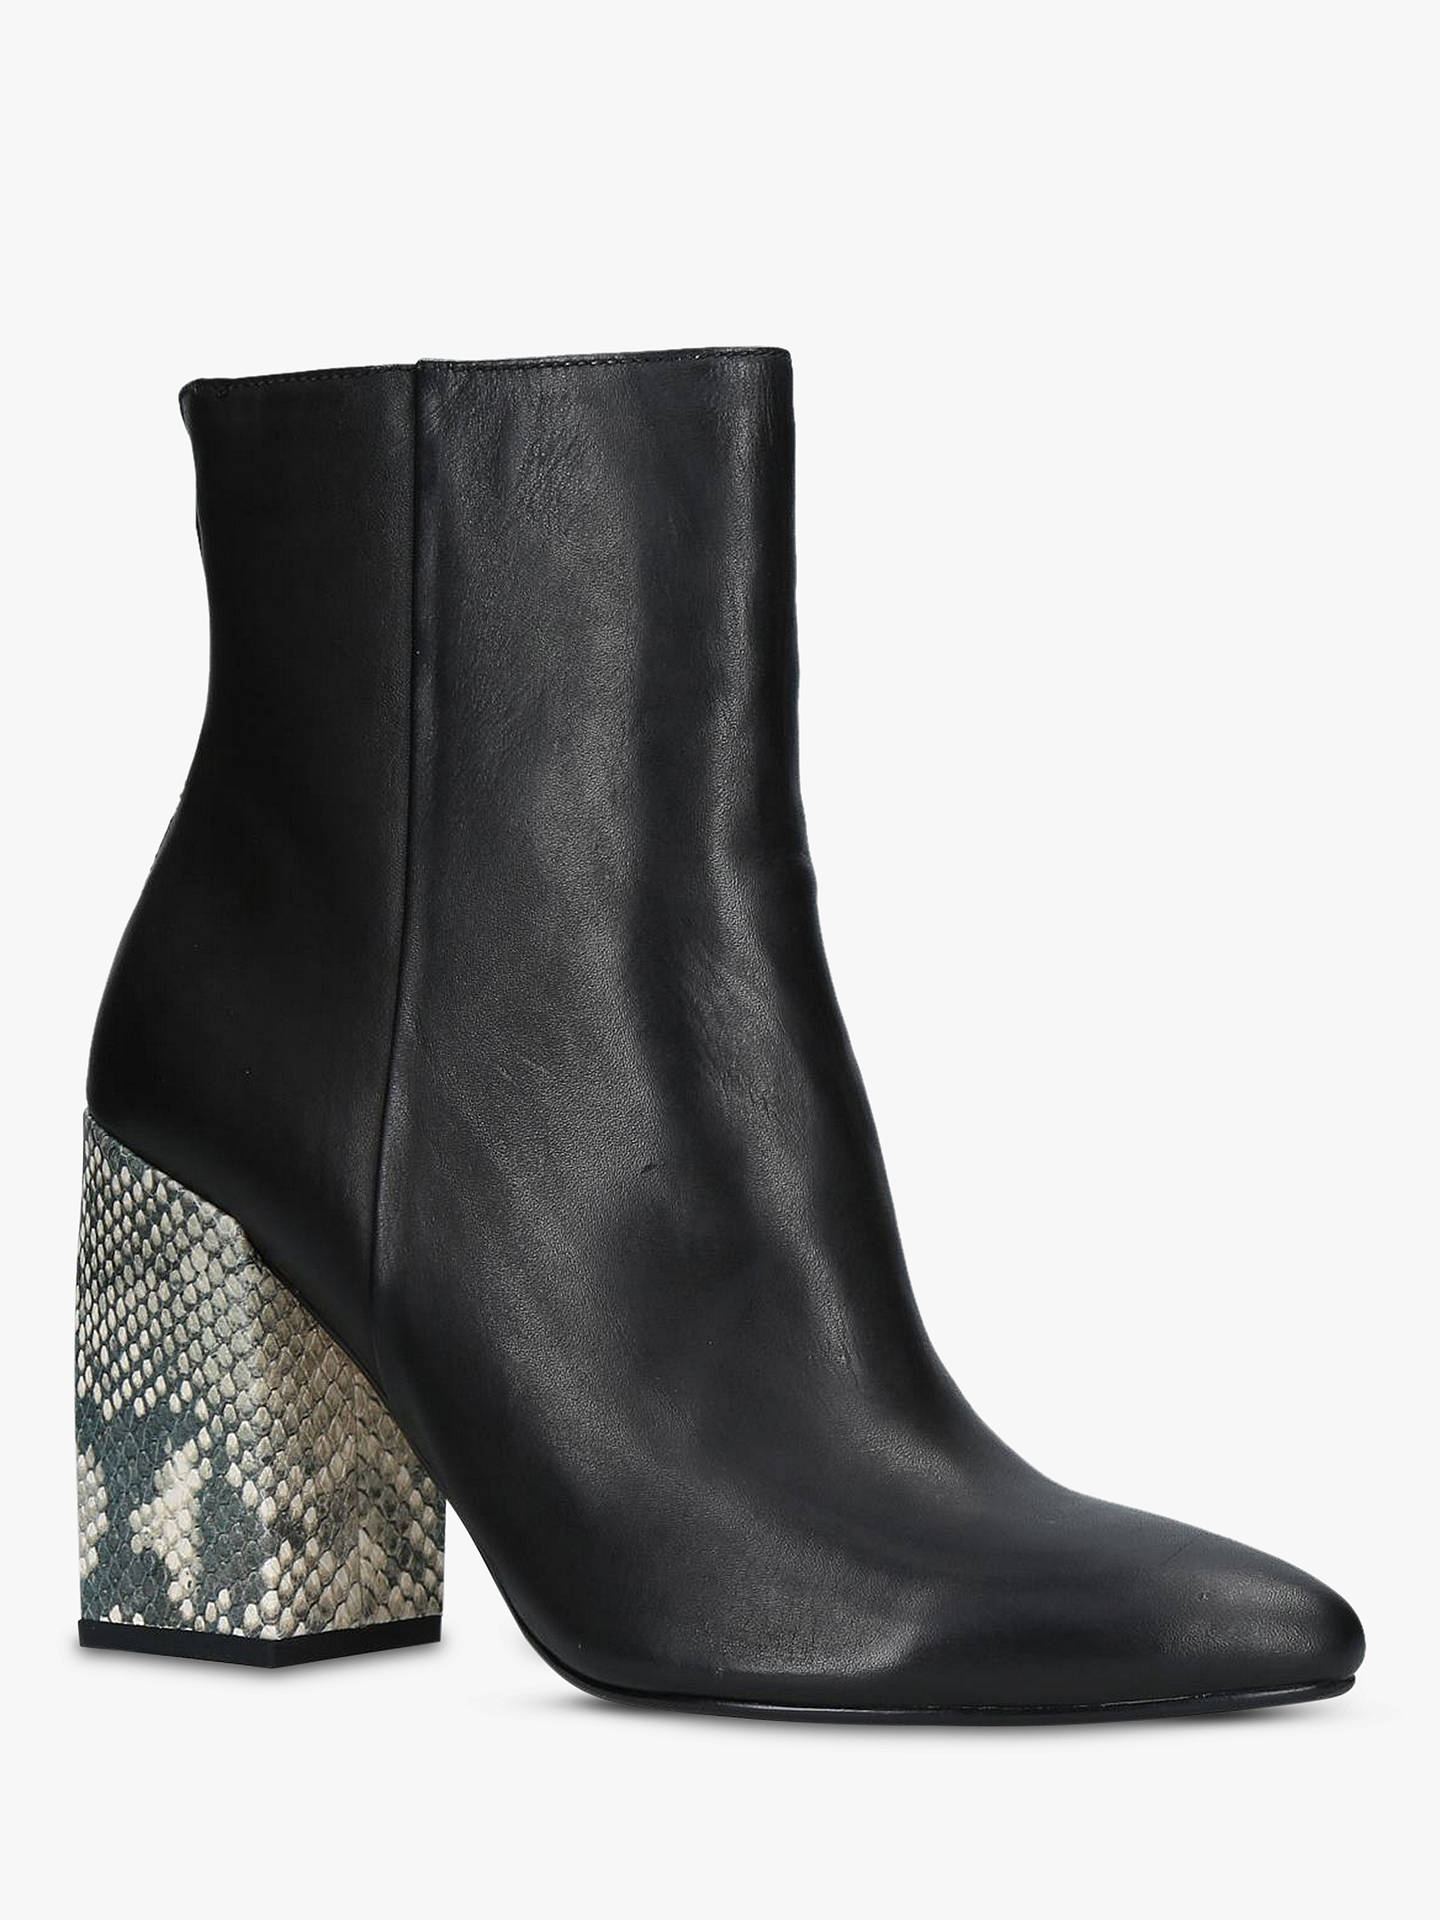 92f65b39dd1 Dolce Vita Coby Block Heel Ankle Boots, Black Leather at John Lewis ...